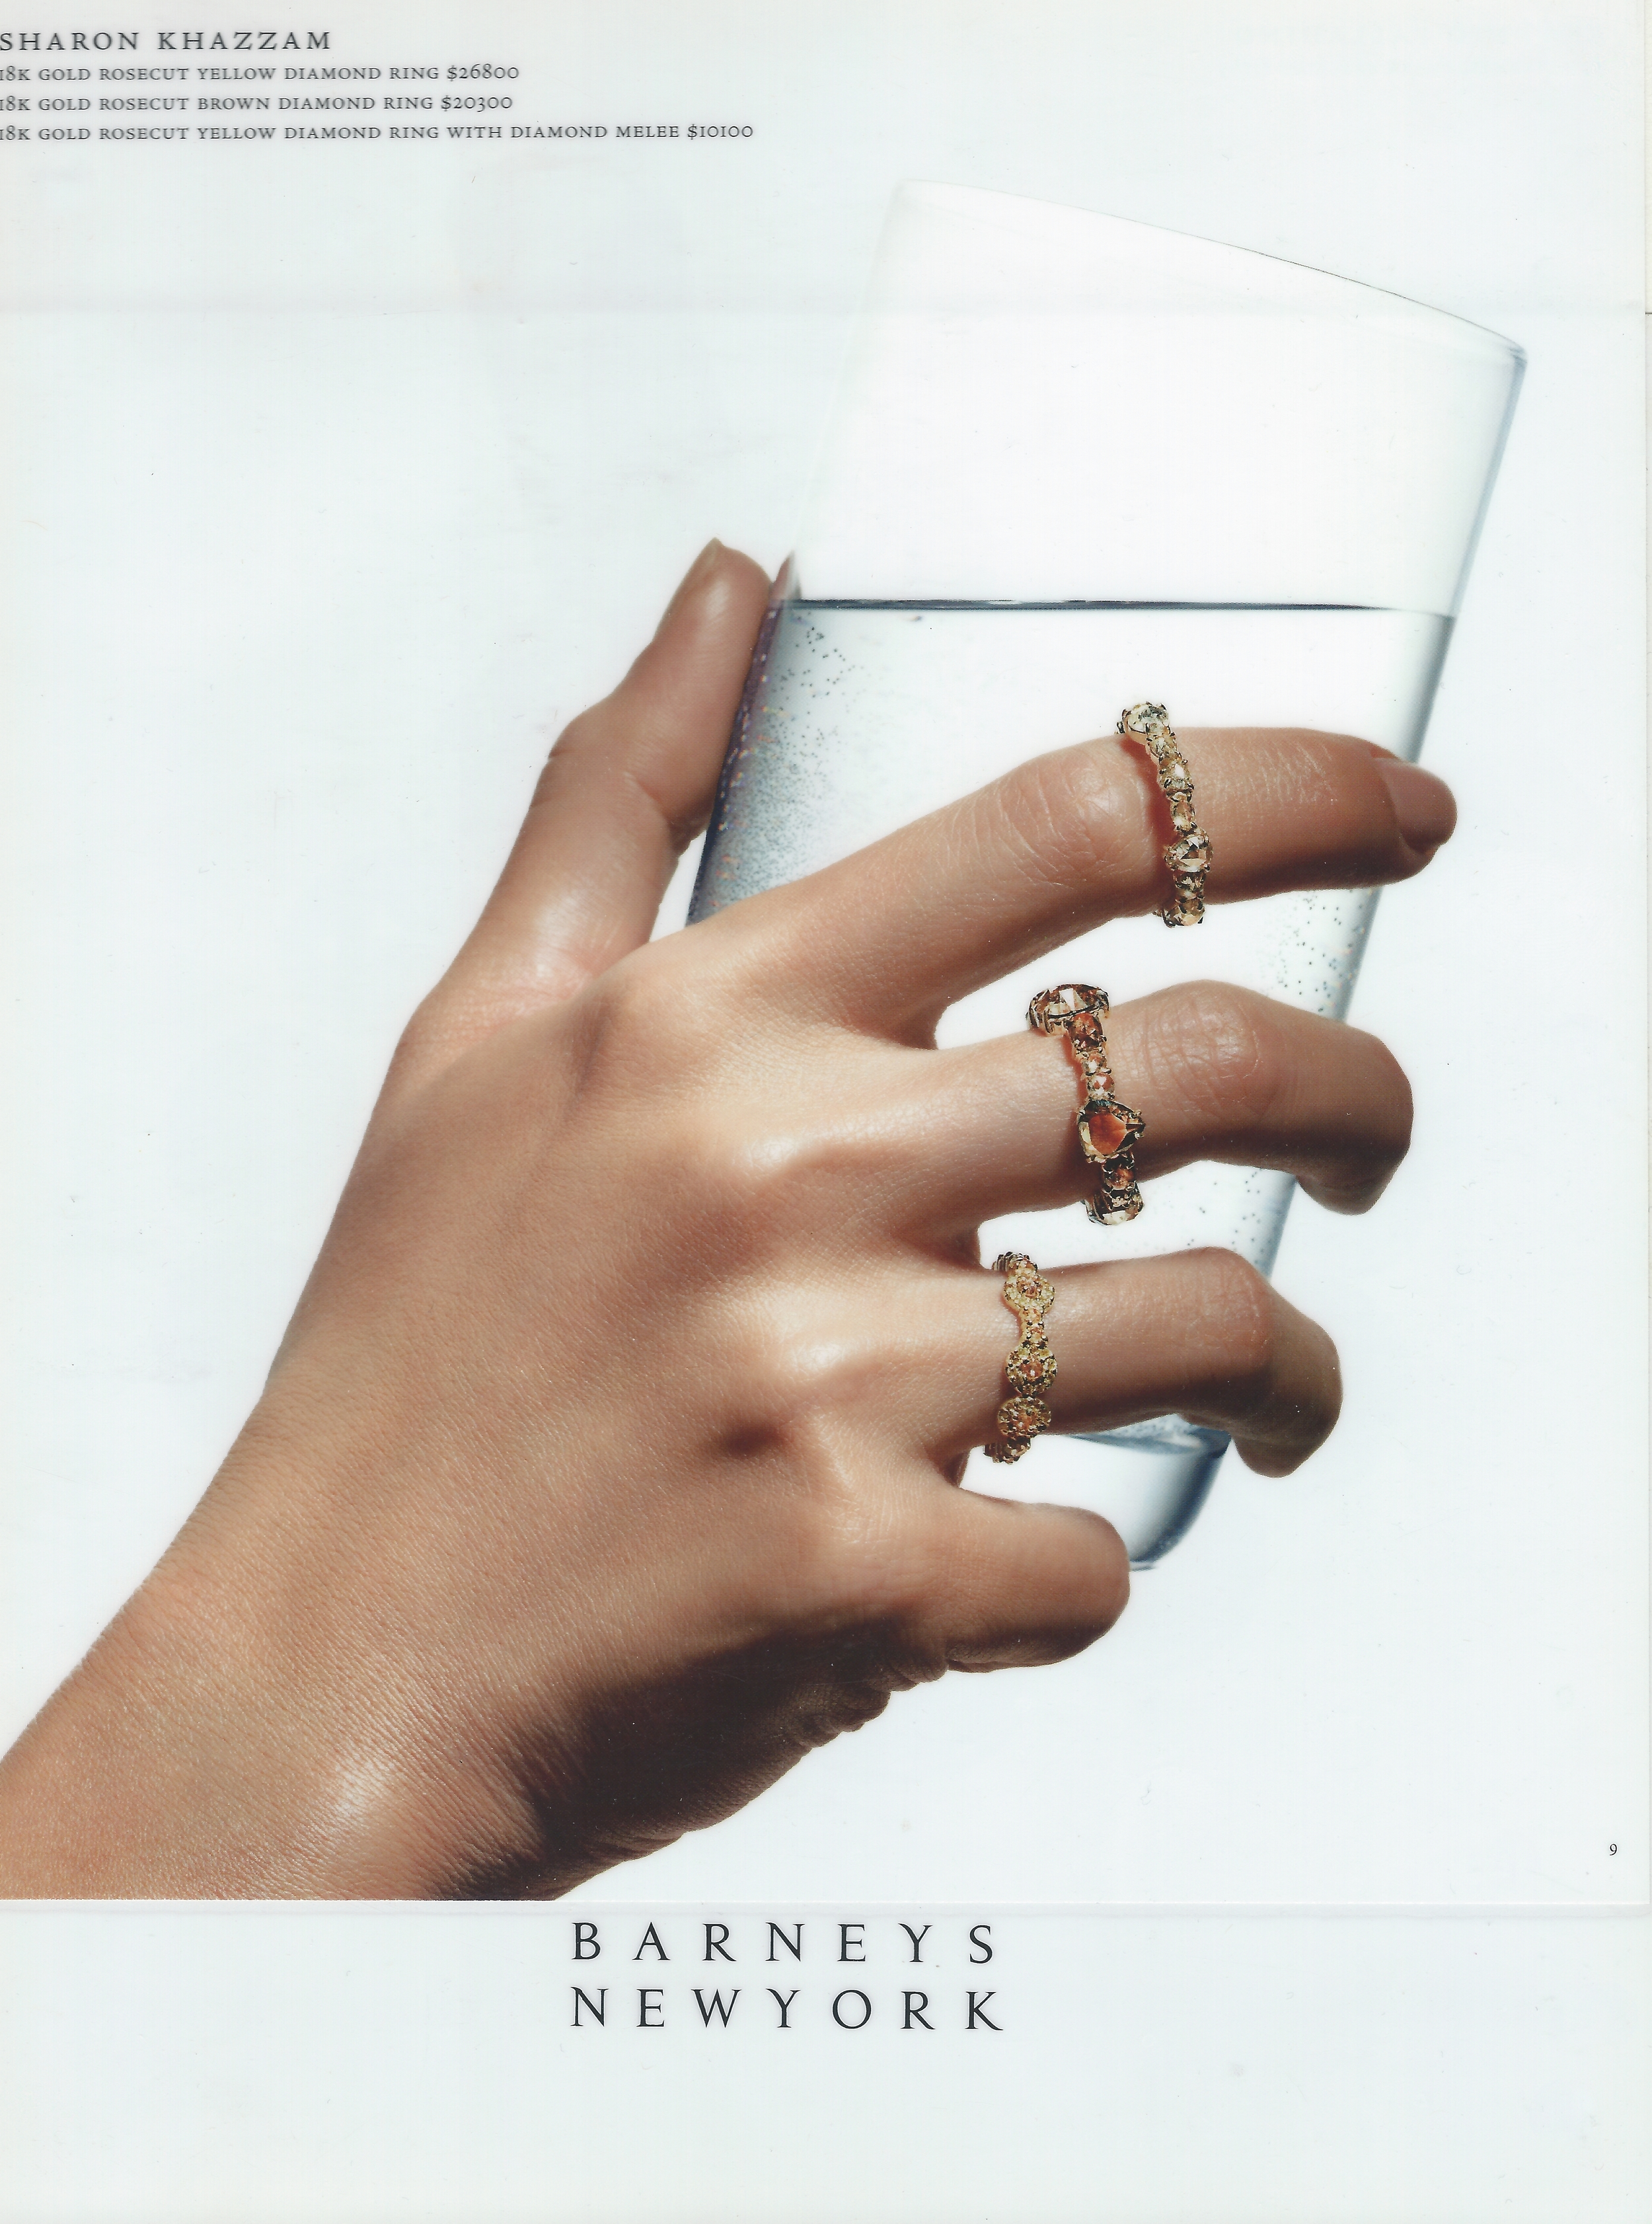 2010-Barneys Mailer- Hand on glass rings.jpg